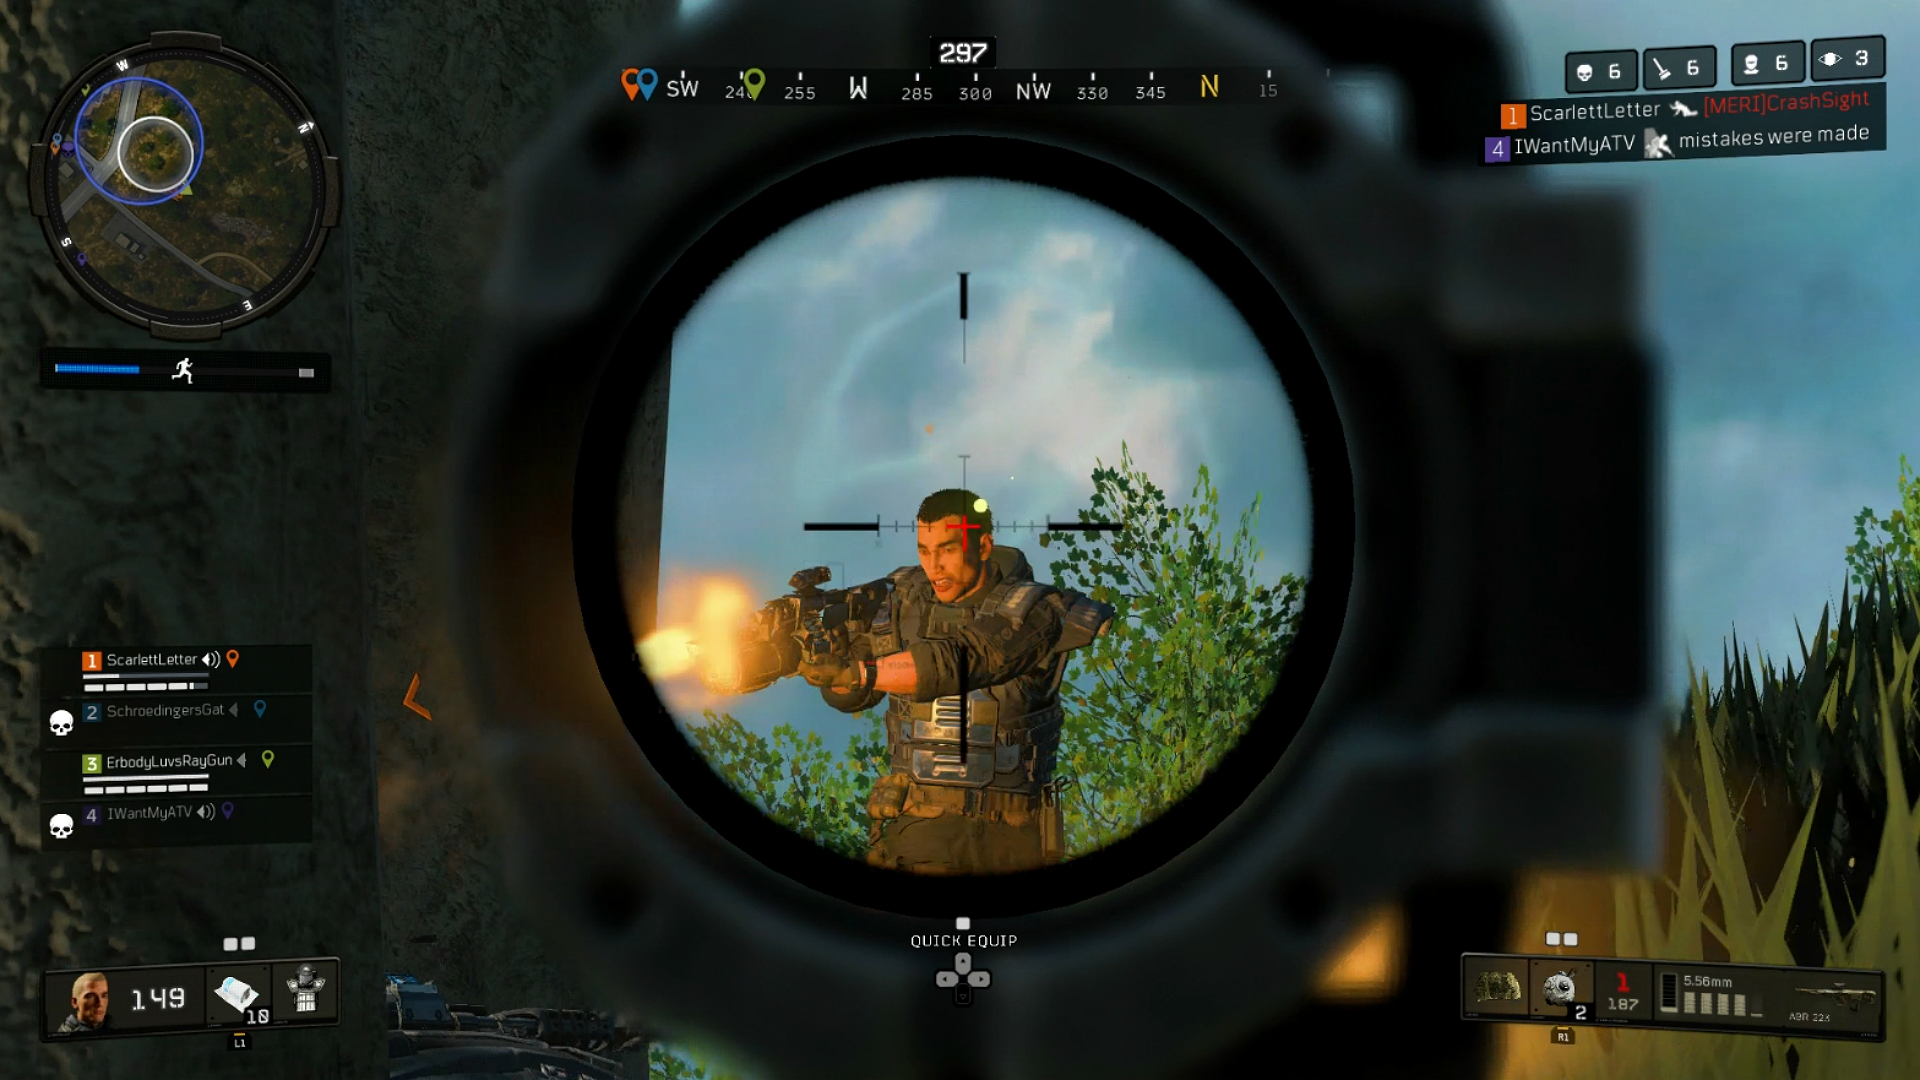 Call of Duty: Black Ops 4 review – battle royale brings the